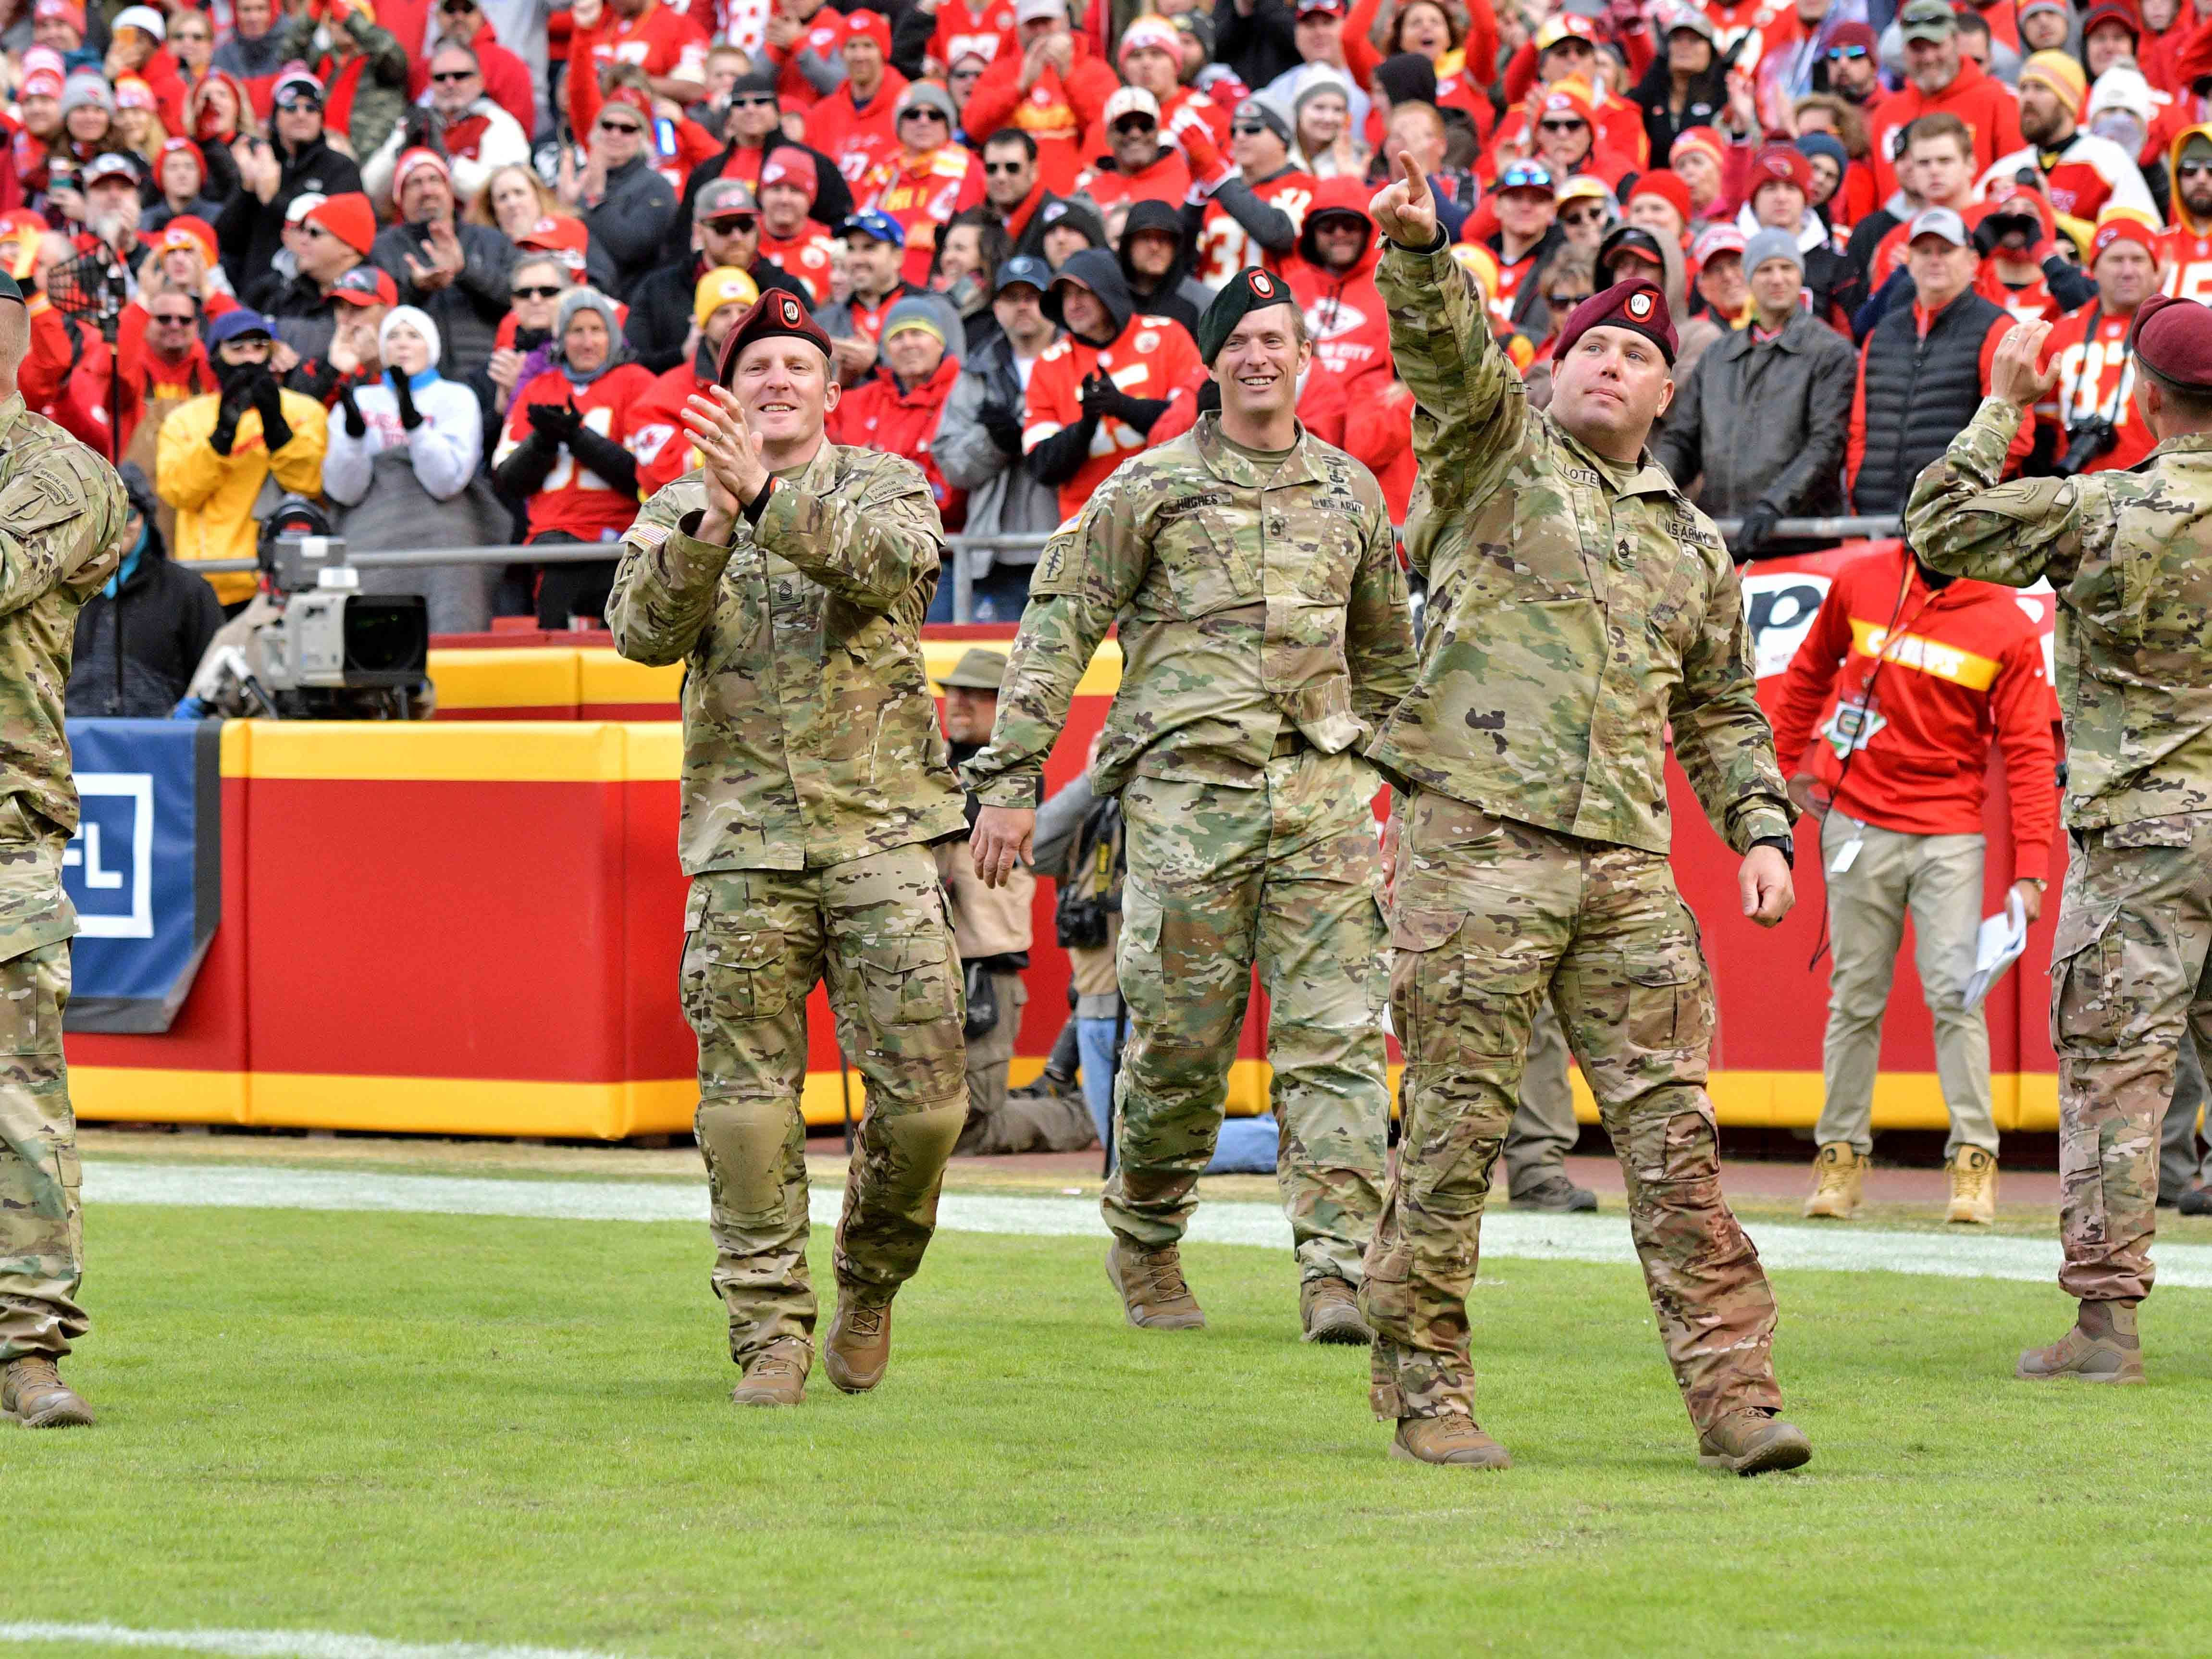 Nov 11, 2018; Kansas City, MO, USA; Members of the Black Dagger paratrooper squadron are introduced on field during the second half of the game between the Kansas City Chiefs and Arizona Cardinals at Arrowhead Stadium. The Chiefs won 26-14. Mandatory Credit: Denny Medley-USA TODAY Sports